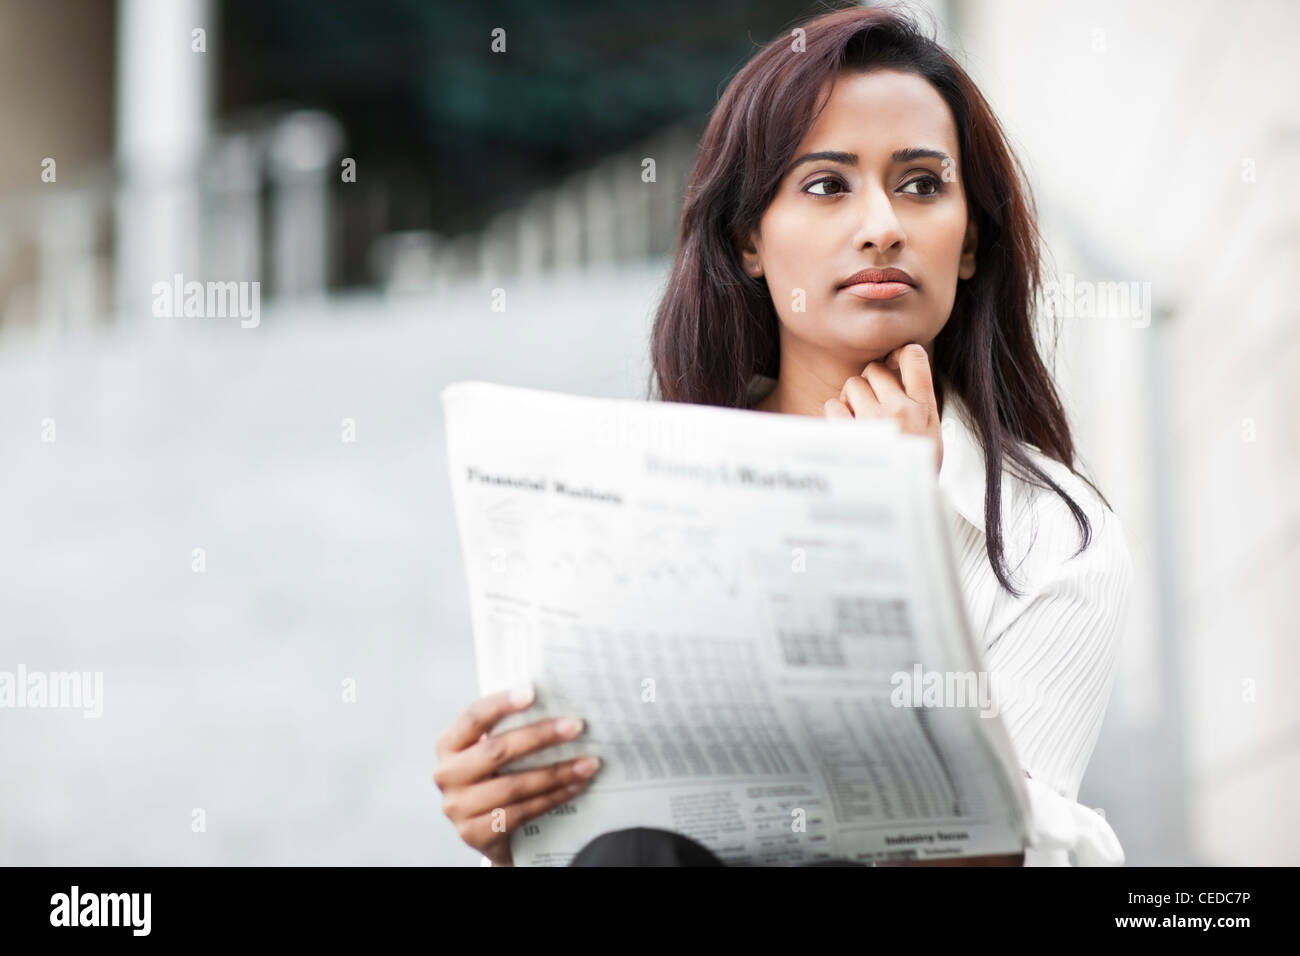 Indian businesswoman reading newspaper outdoors Stock Photo